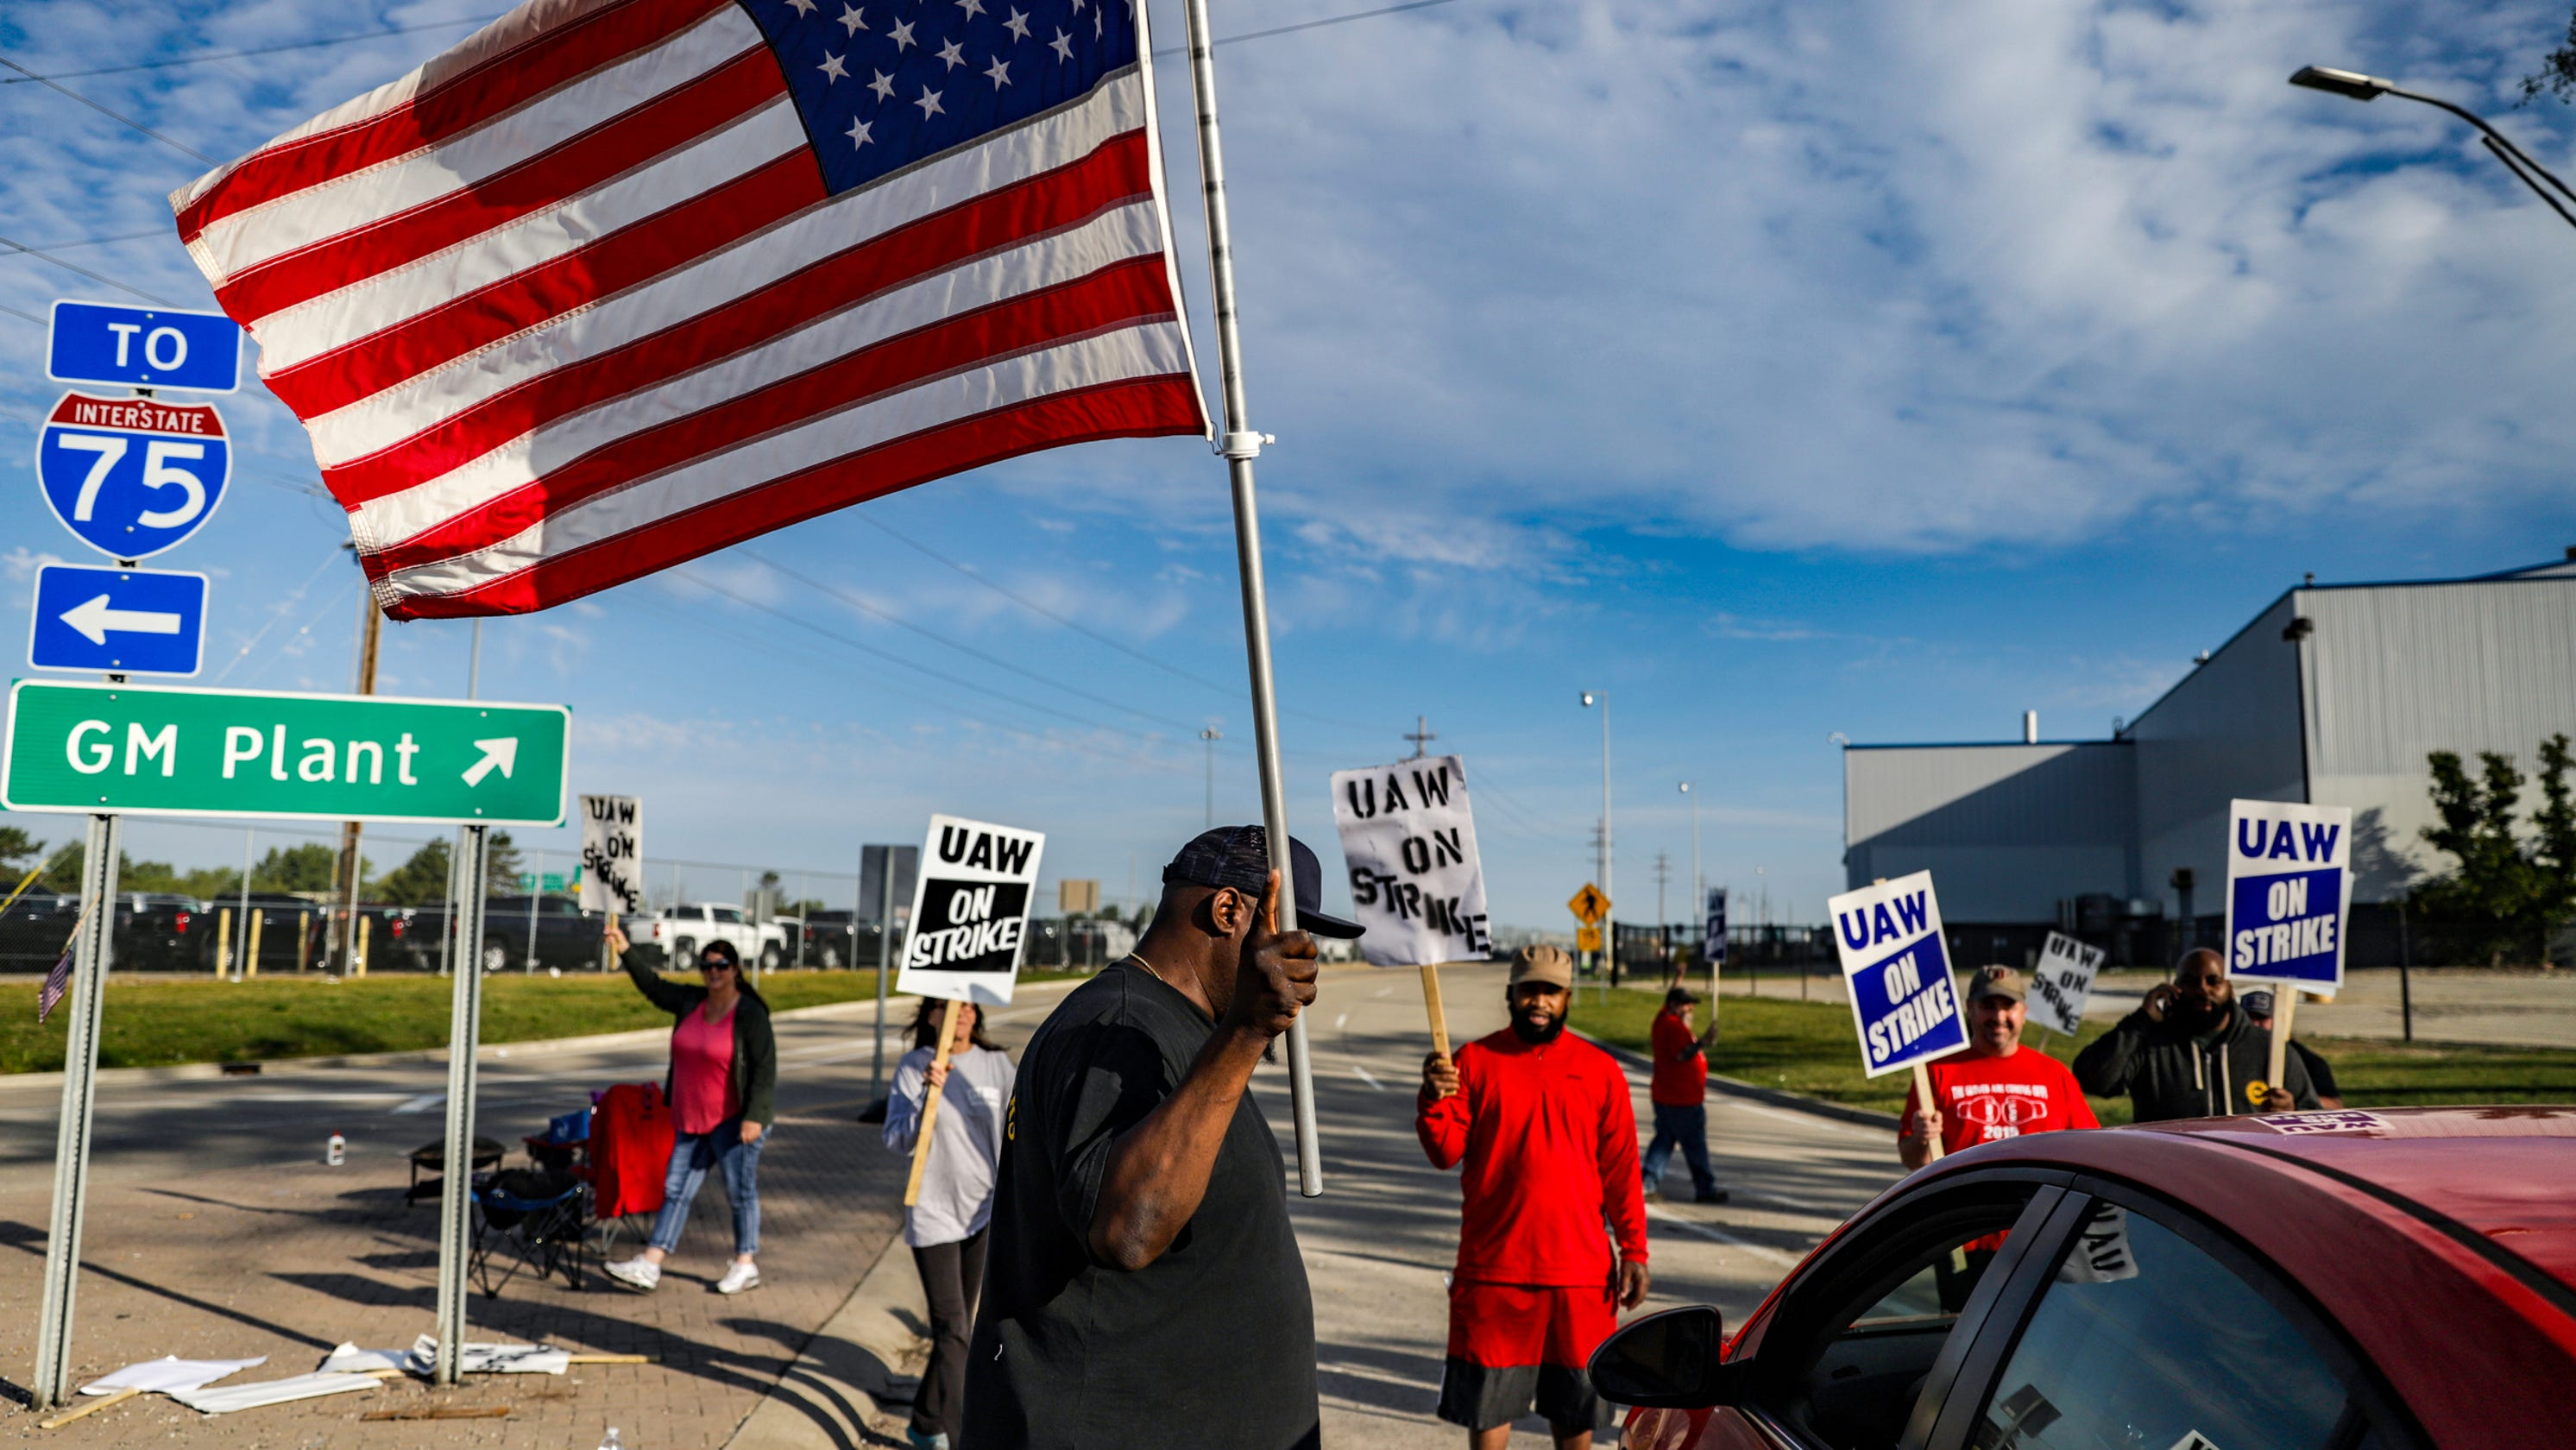 A week in, these GM strikers are worried but determined: 'This is America'